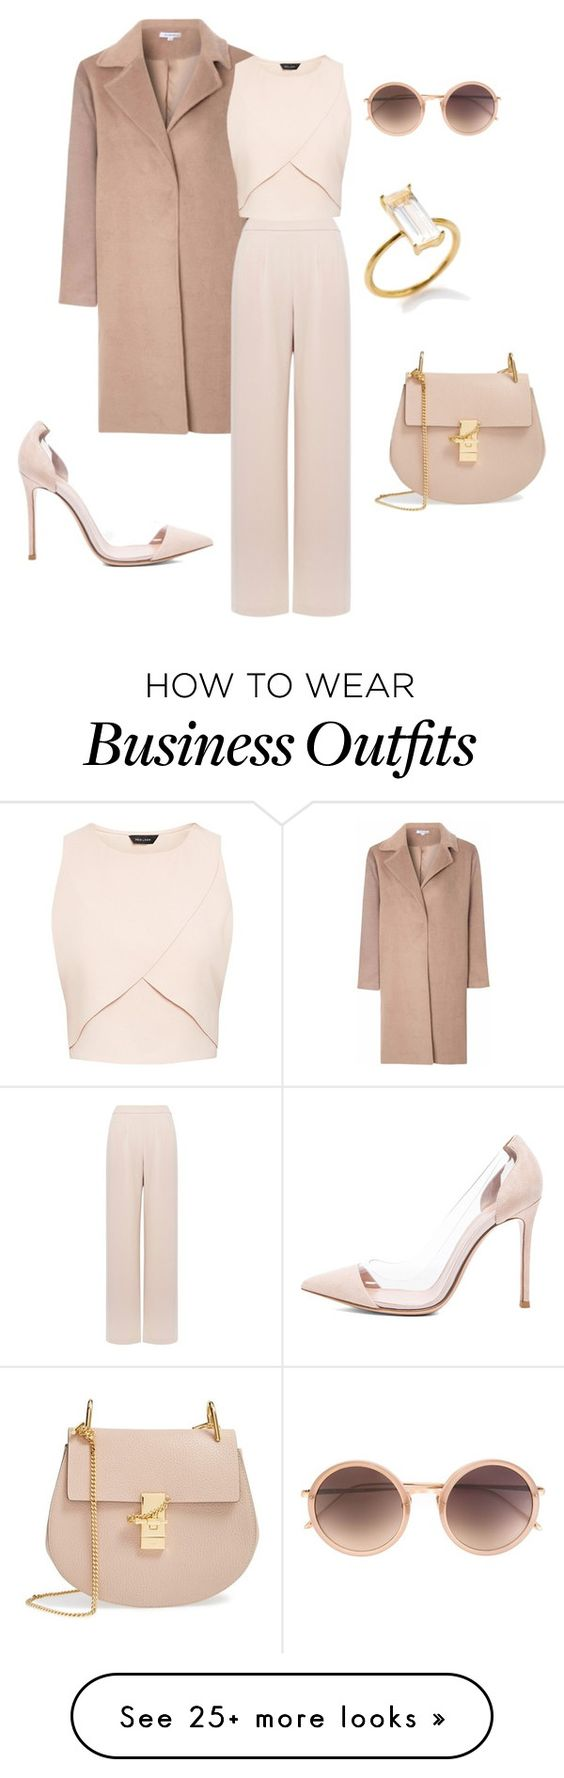 """""""Work wear in blush"""" by bshujewelry on Polyvore featuring Glamorous, Coast, Gianvito Rossi, Chloé, Linda Farrow, women's clothing, women, female, woman and misses"""